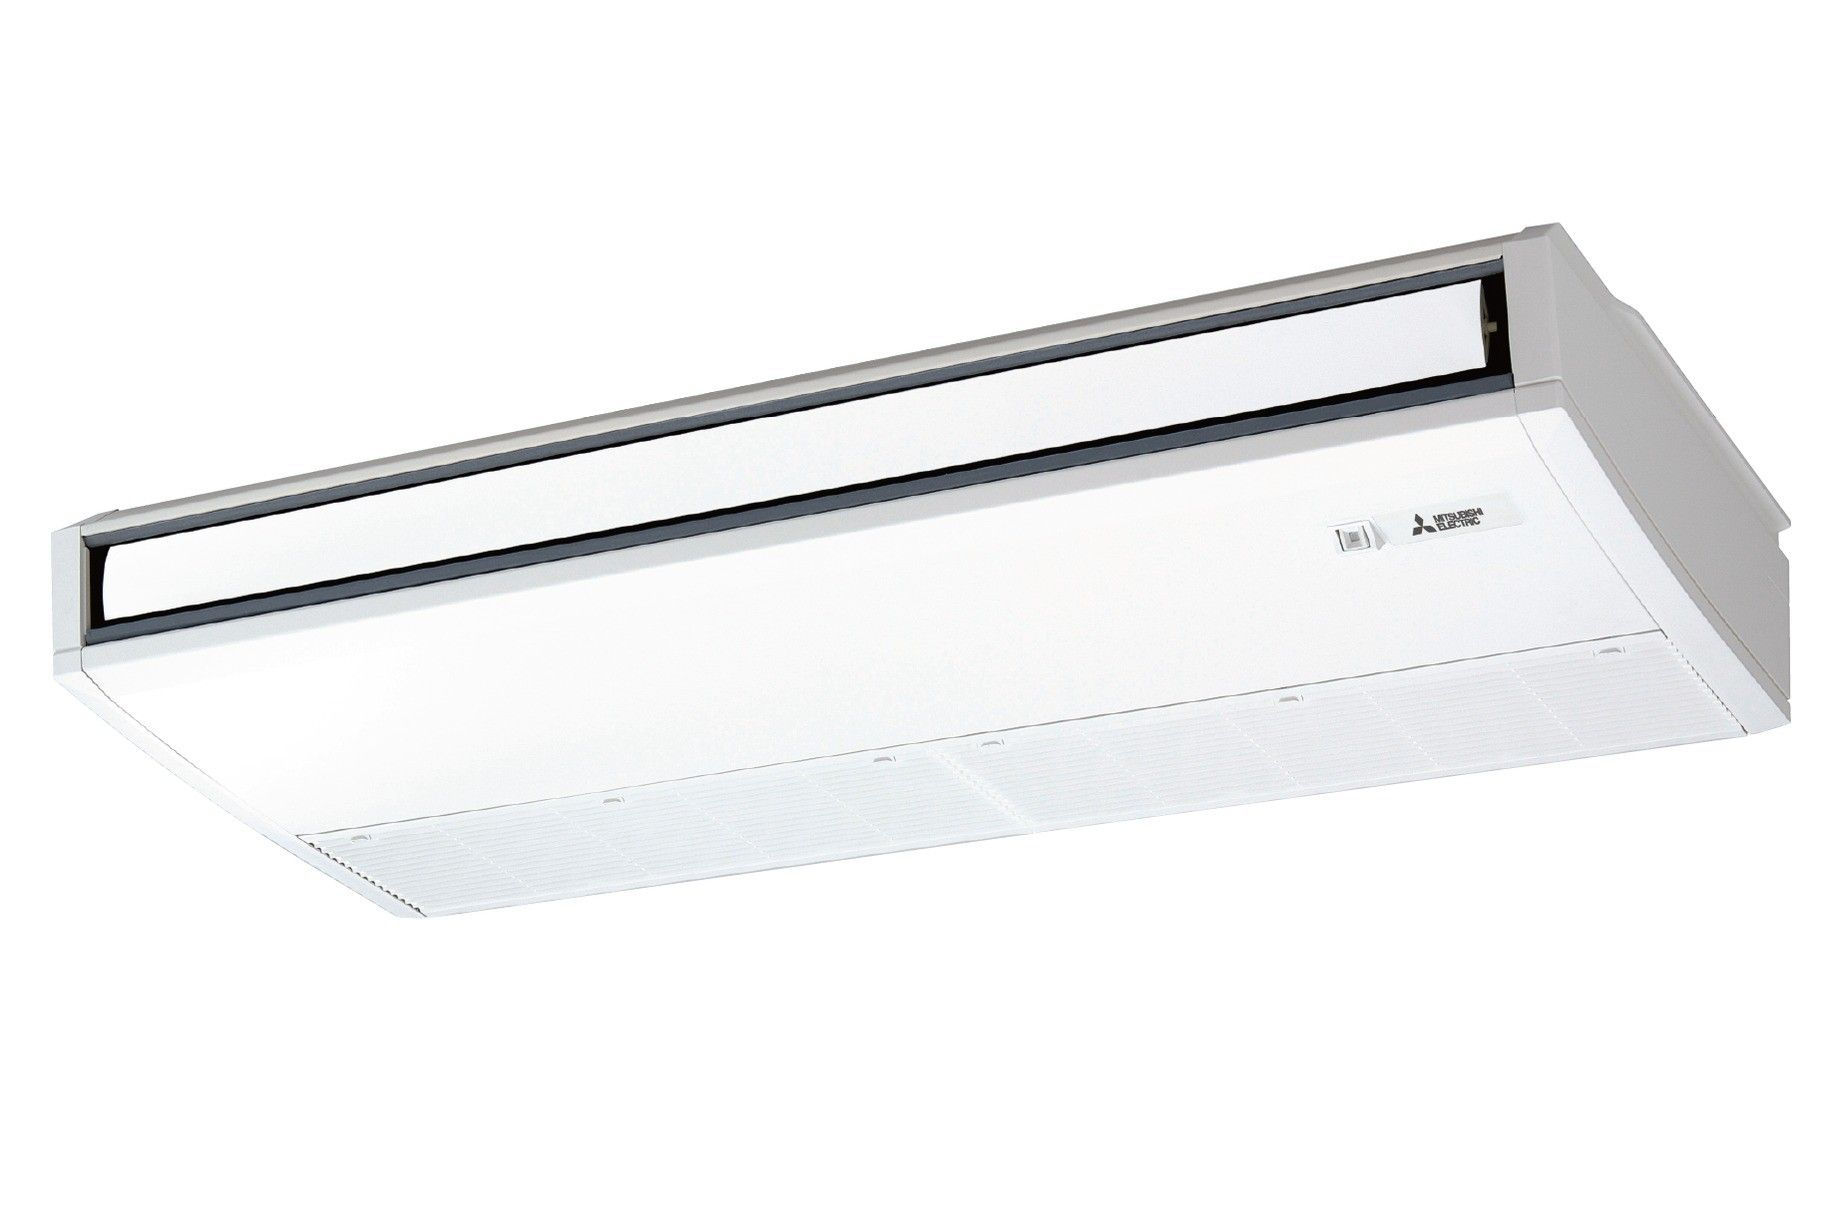 24k Btu Mitsubishi Pcaa Ceiling Suspended Indoor Unit